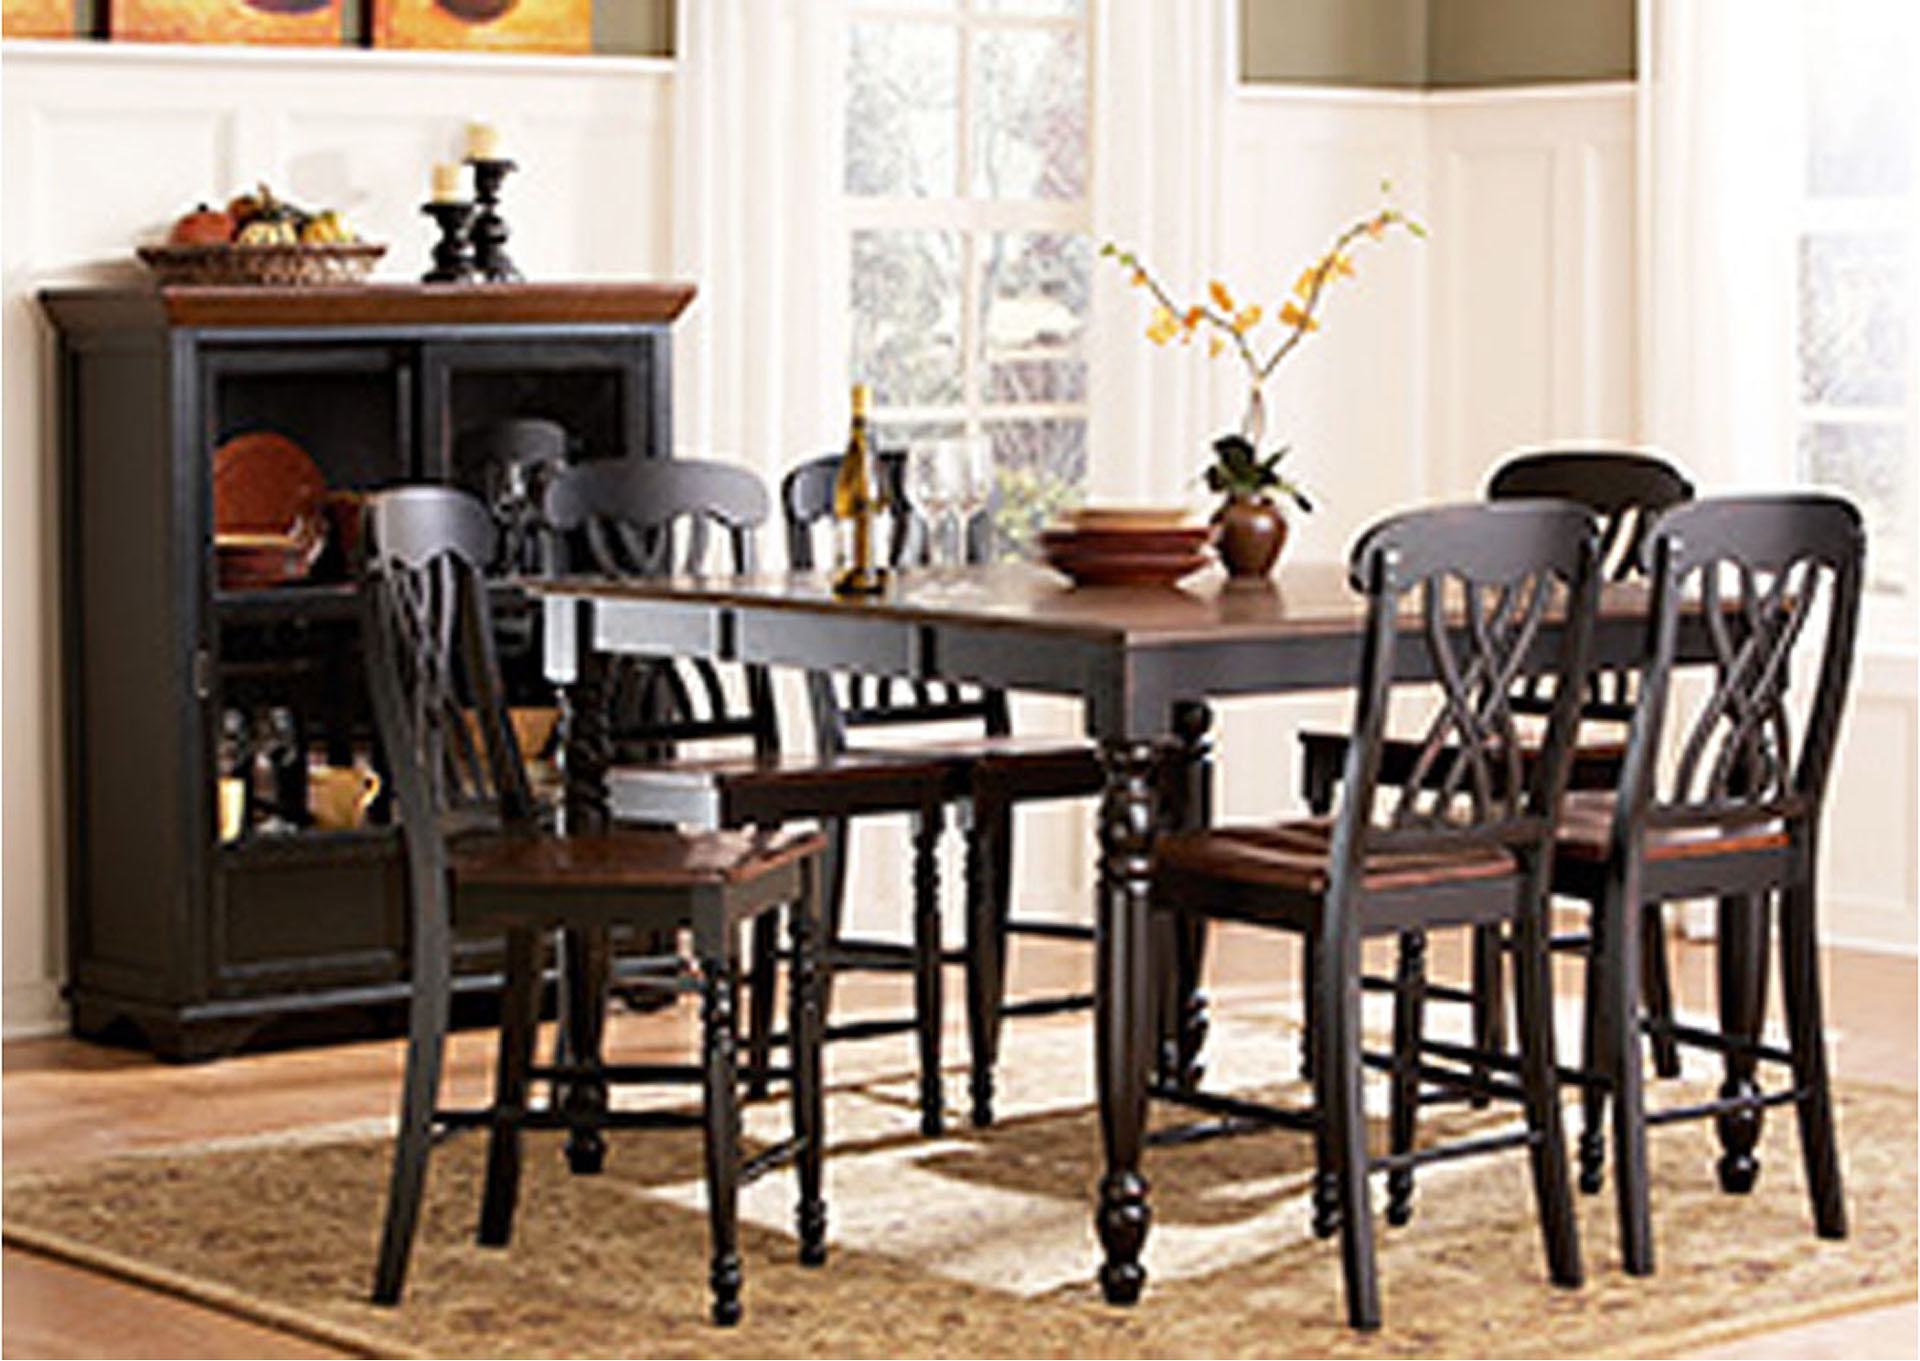 Ohana Black/Cherry Rectangular Counter Height Dining Room Table w/4 Counter Height Chairs,Homelegance